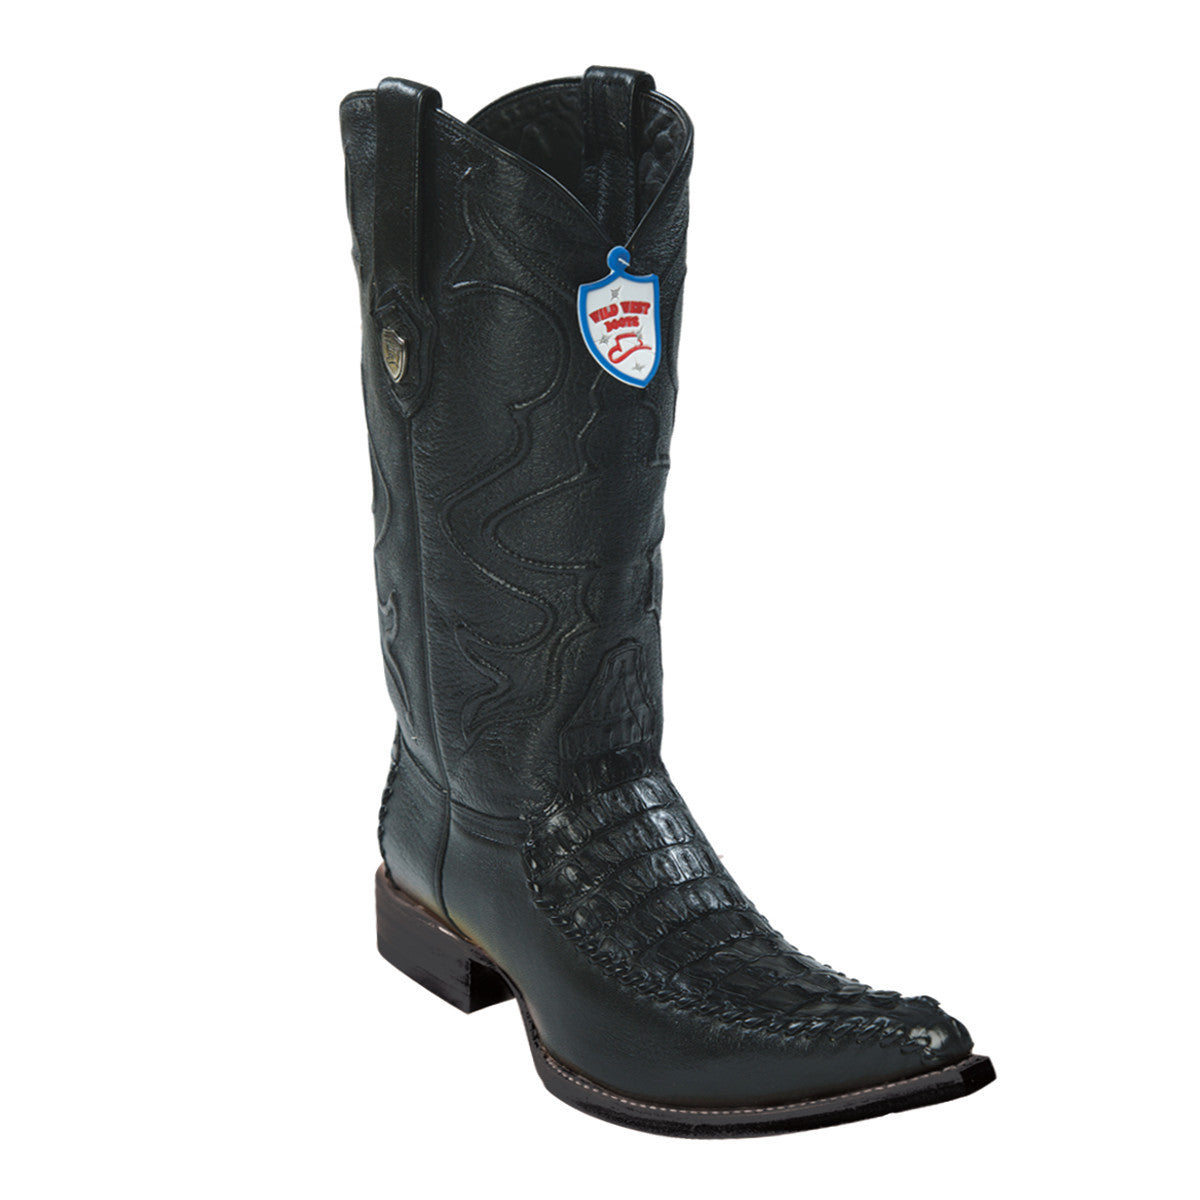 Wild West Boots 3x Toe Caiman Tail/Deer